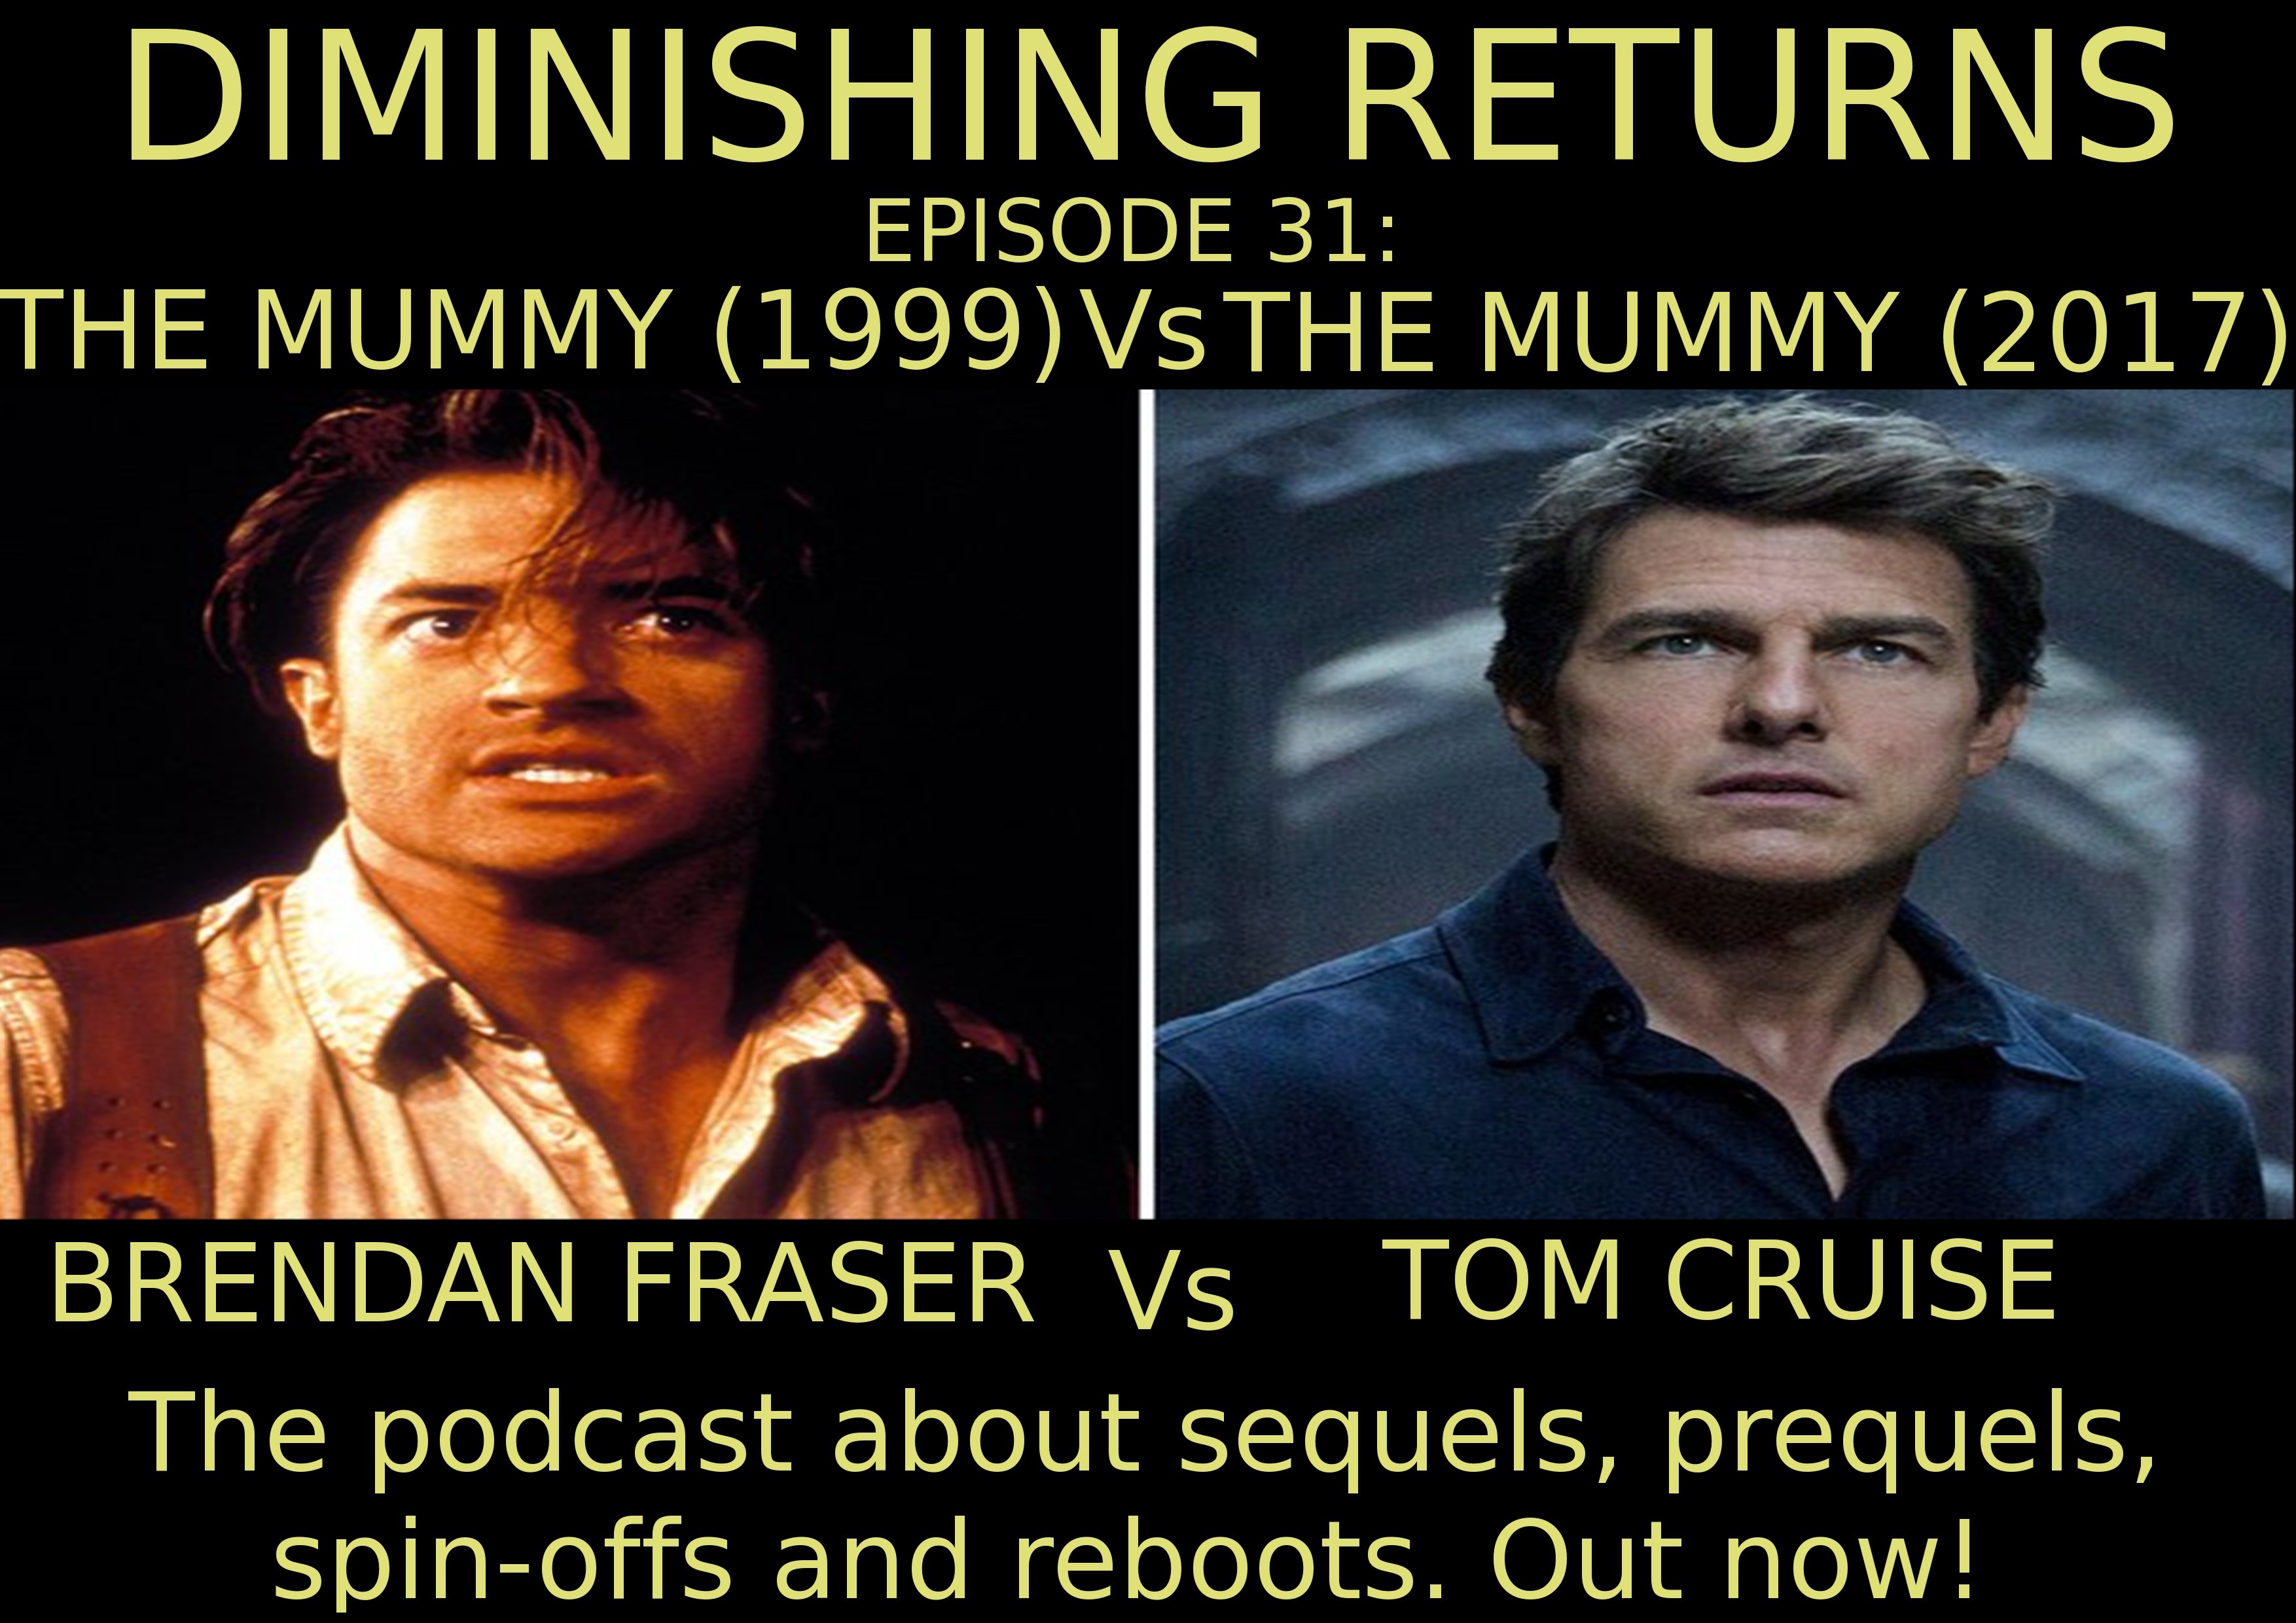 31: The Mummy 1999 vs The Mummy 2017 Or Brendan Fraser Vs Tom Cruise